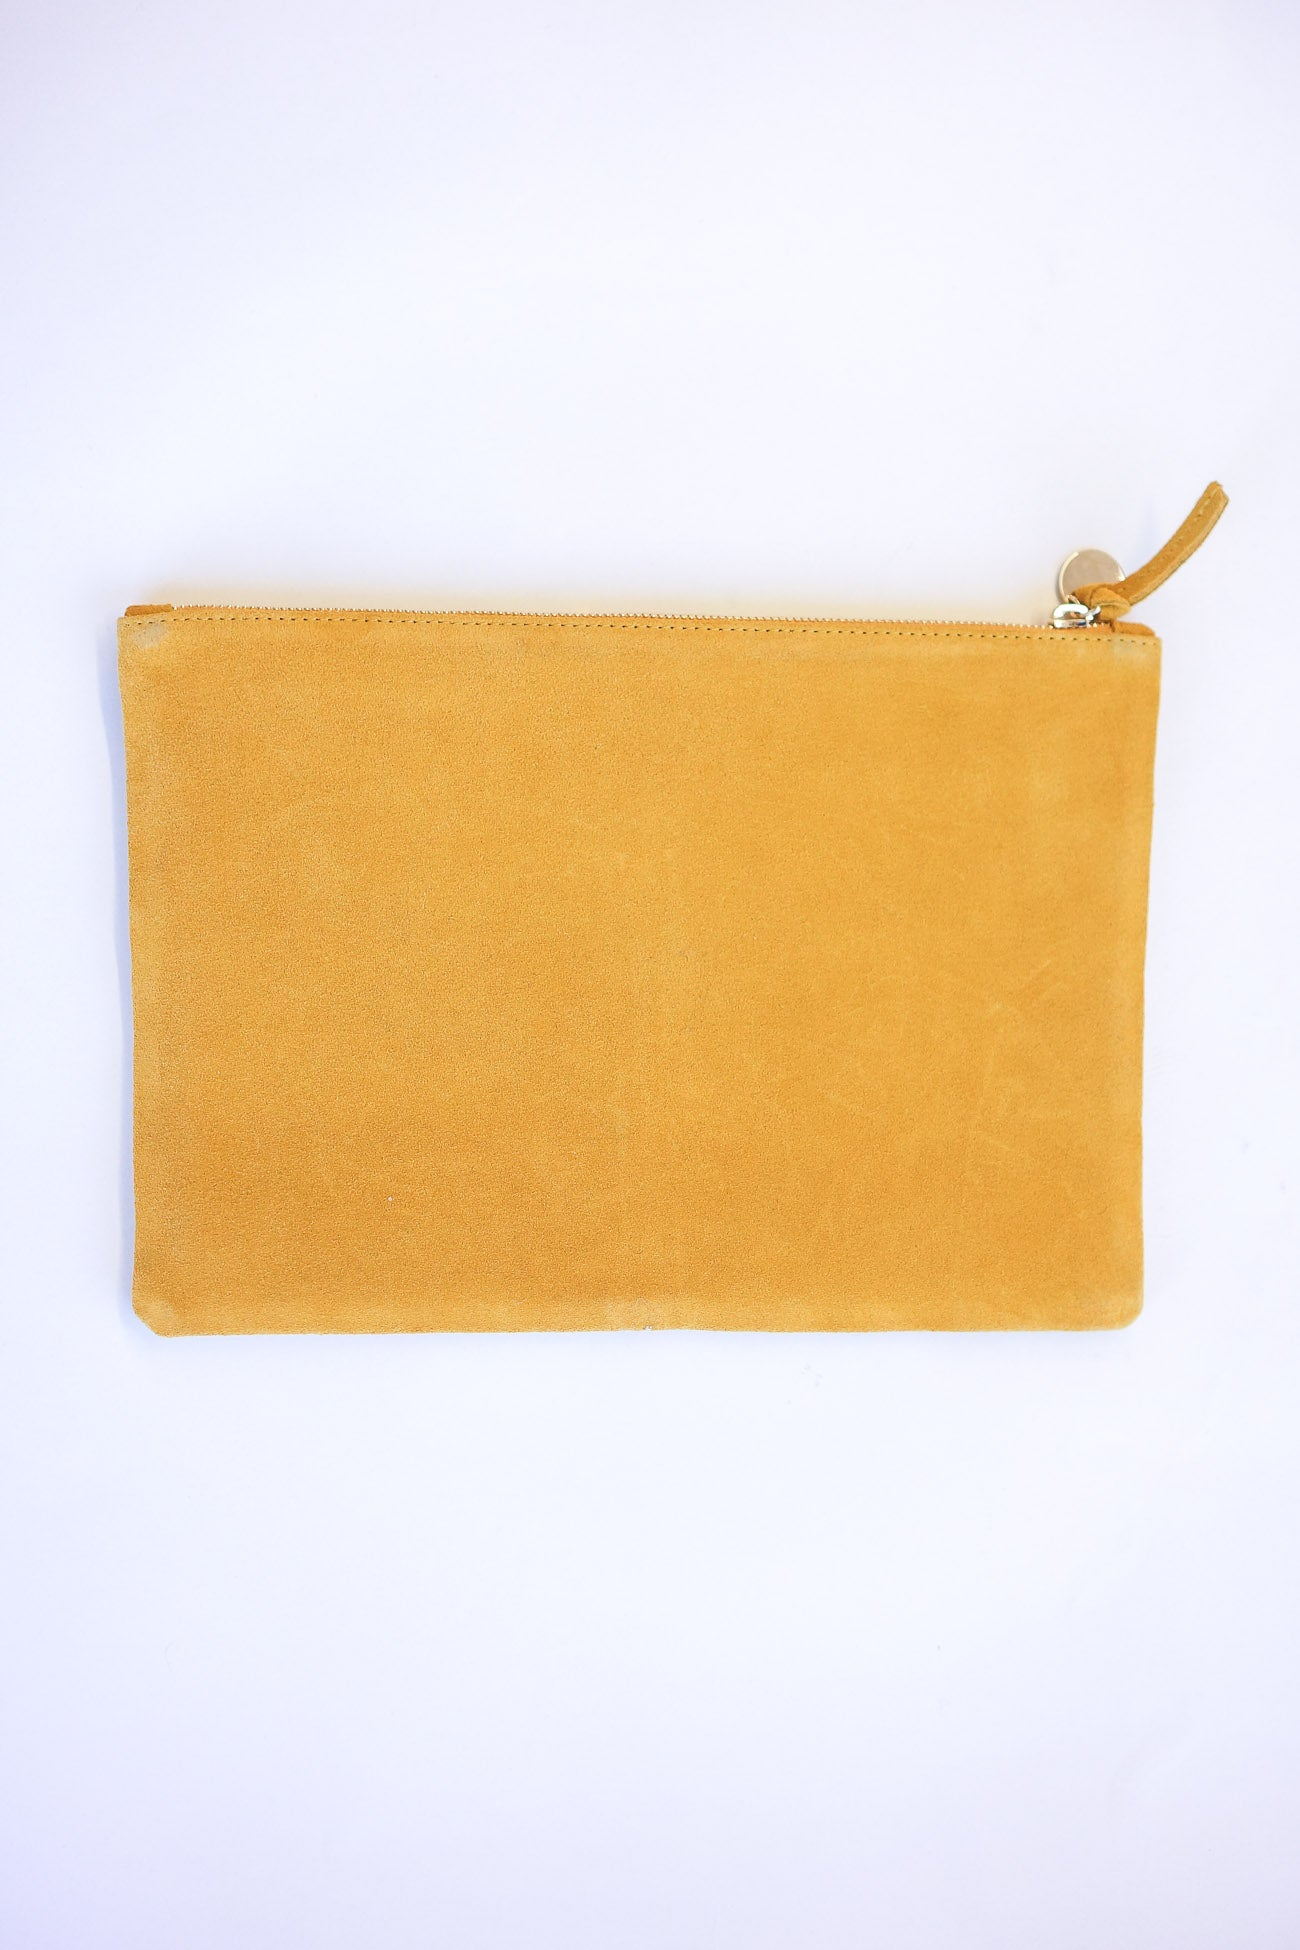 Clare Vivier Flat Clutch Marigold Suede With Red, Camellia, and Ortensia Stripe